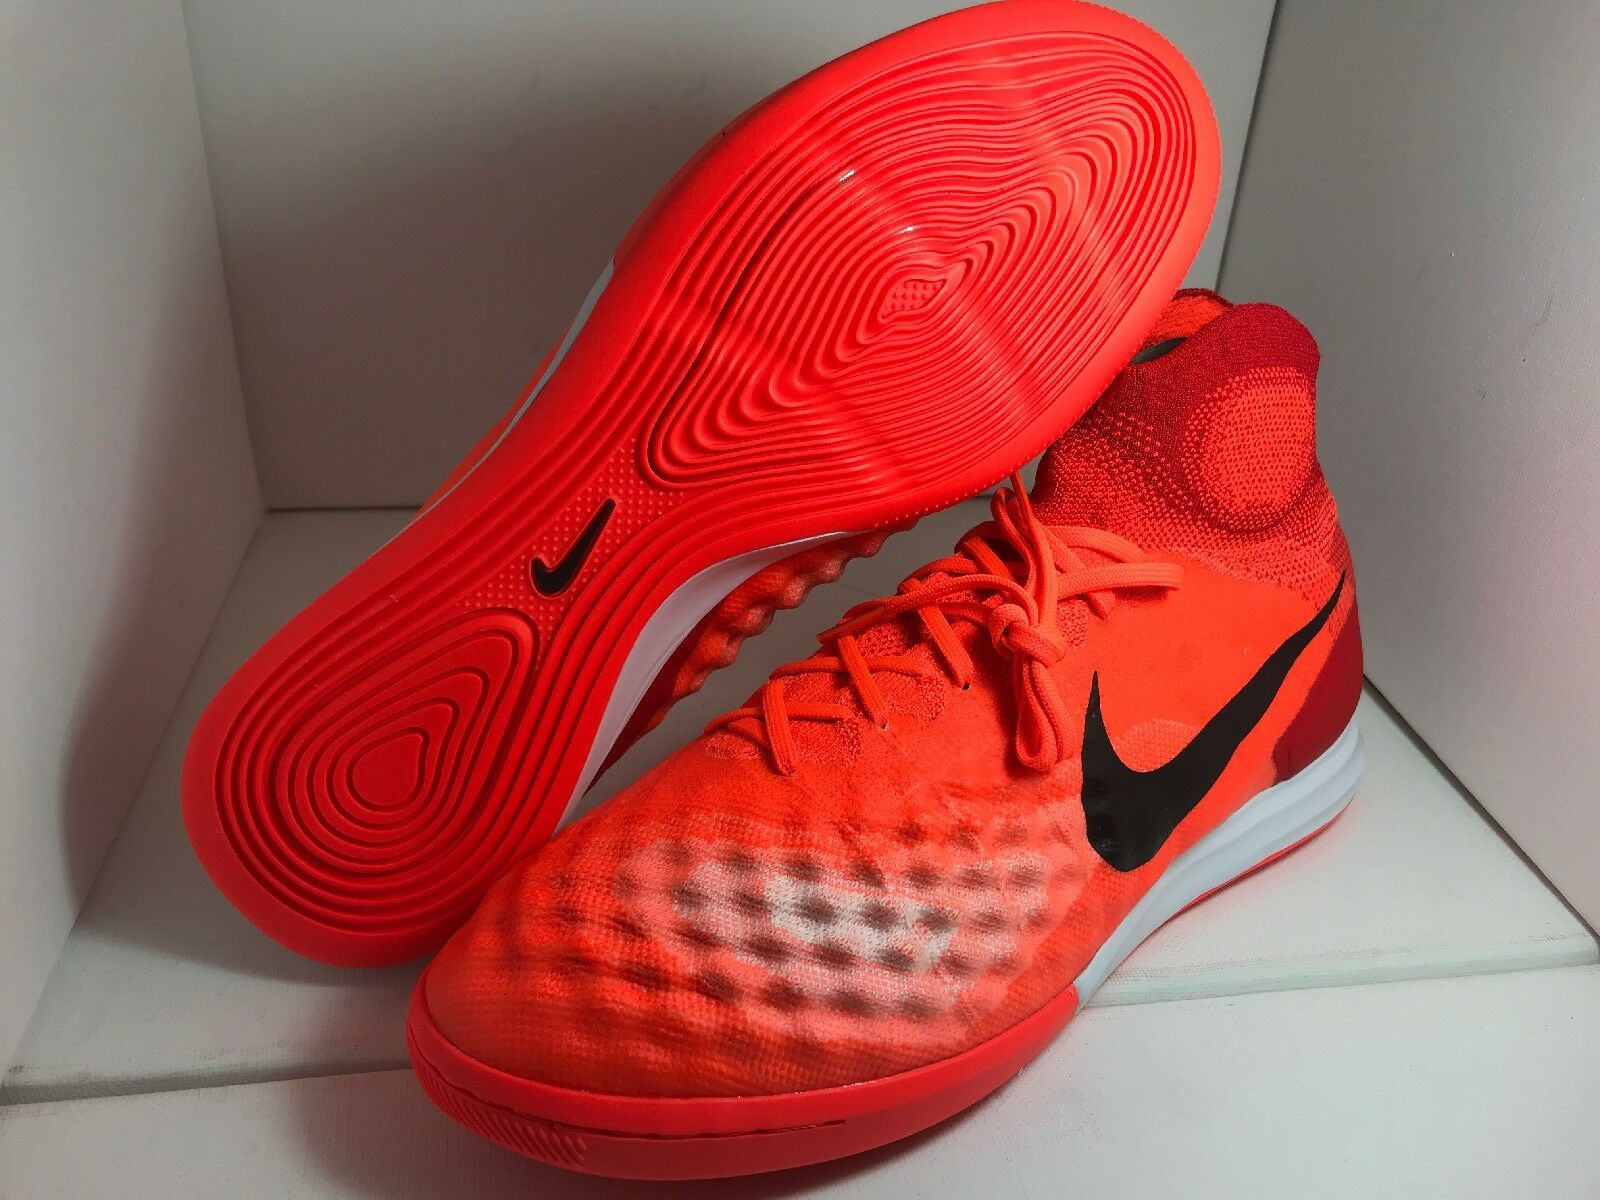 New Nike MagistaX Proximo II IC DF ACC SOCCER 843957 805 Size 10.5 MSRP:  175